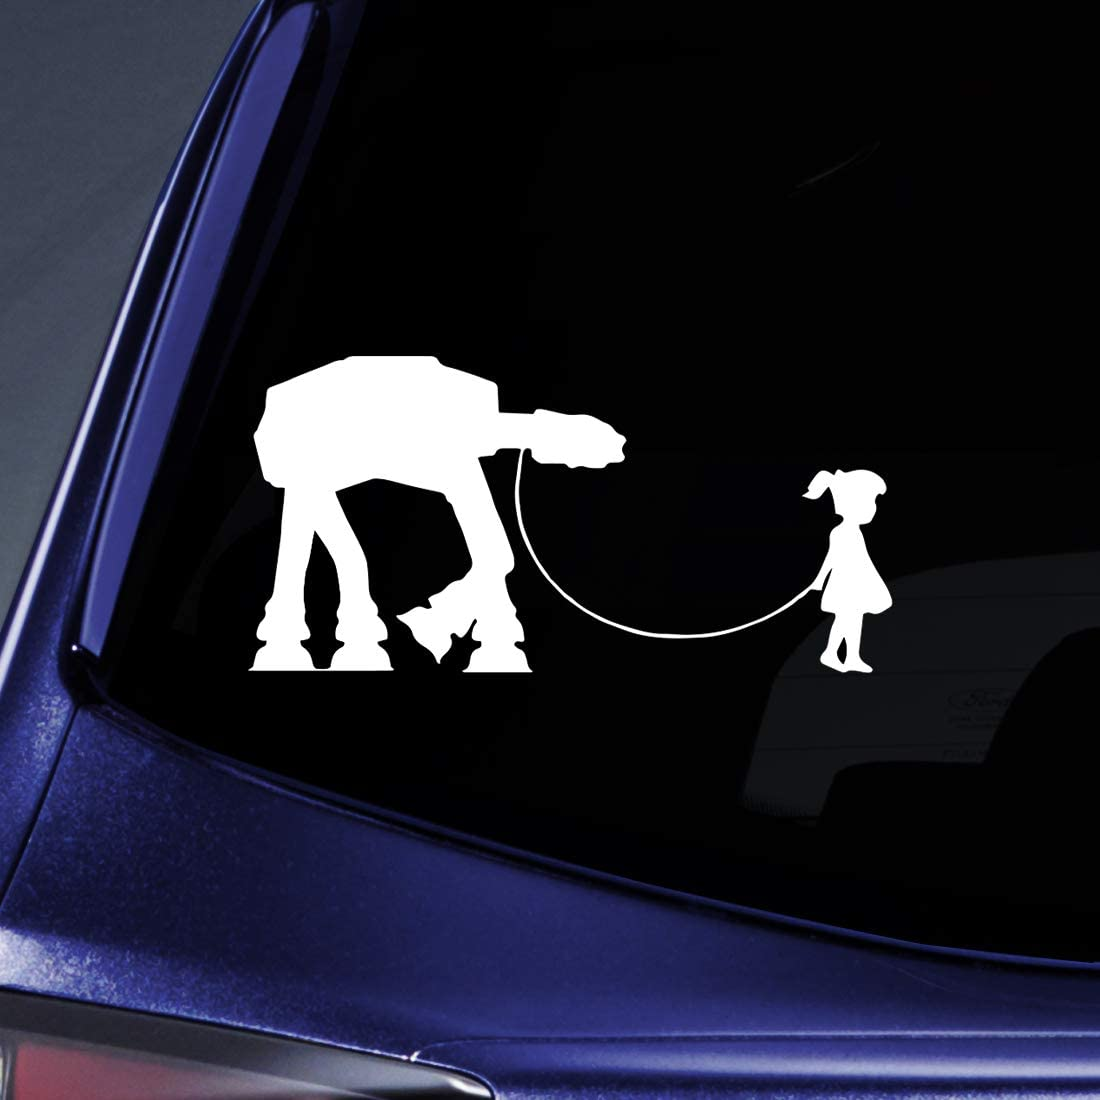 "Bargain Max Decals - Girl Walking Robot - Sticker Decal Notebook Car Laptop 8"" (White)"